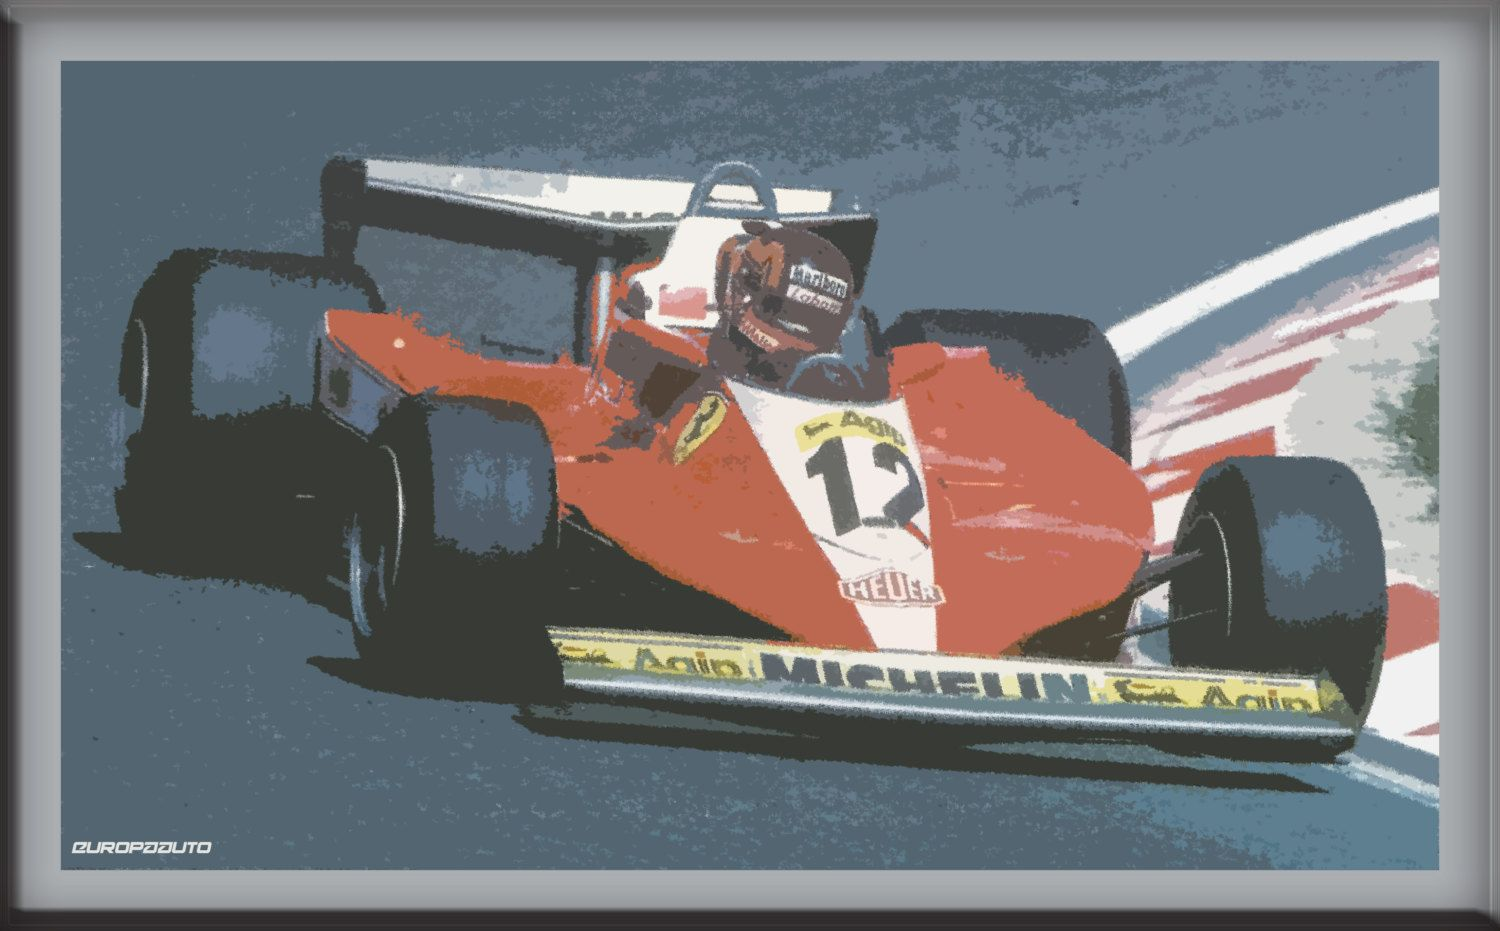 Formula 1 Legends - Jacques Villeneuve - Limited edition digital prints from auto racing championships such as WRC, F1, and Le Mans by EuropaAuto on Etsy